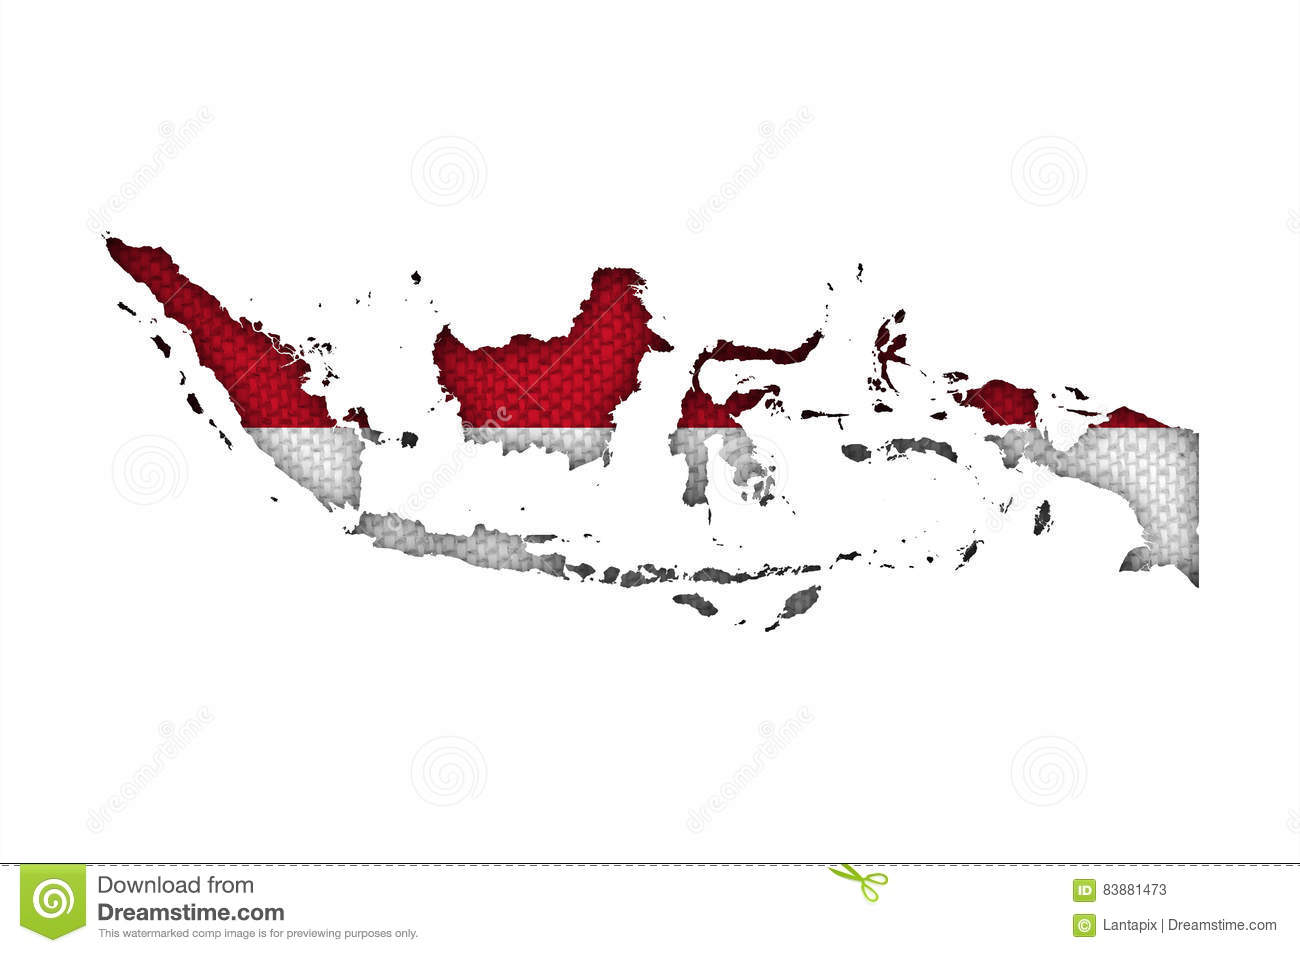 Map and flag of Indonesia on old linen